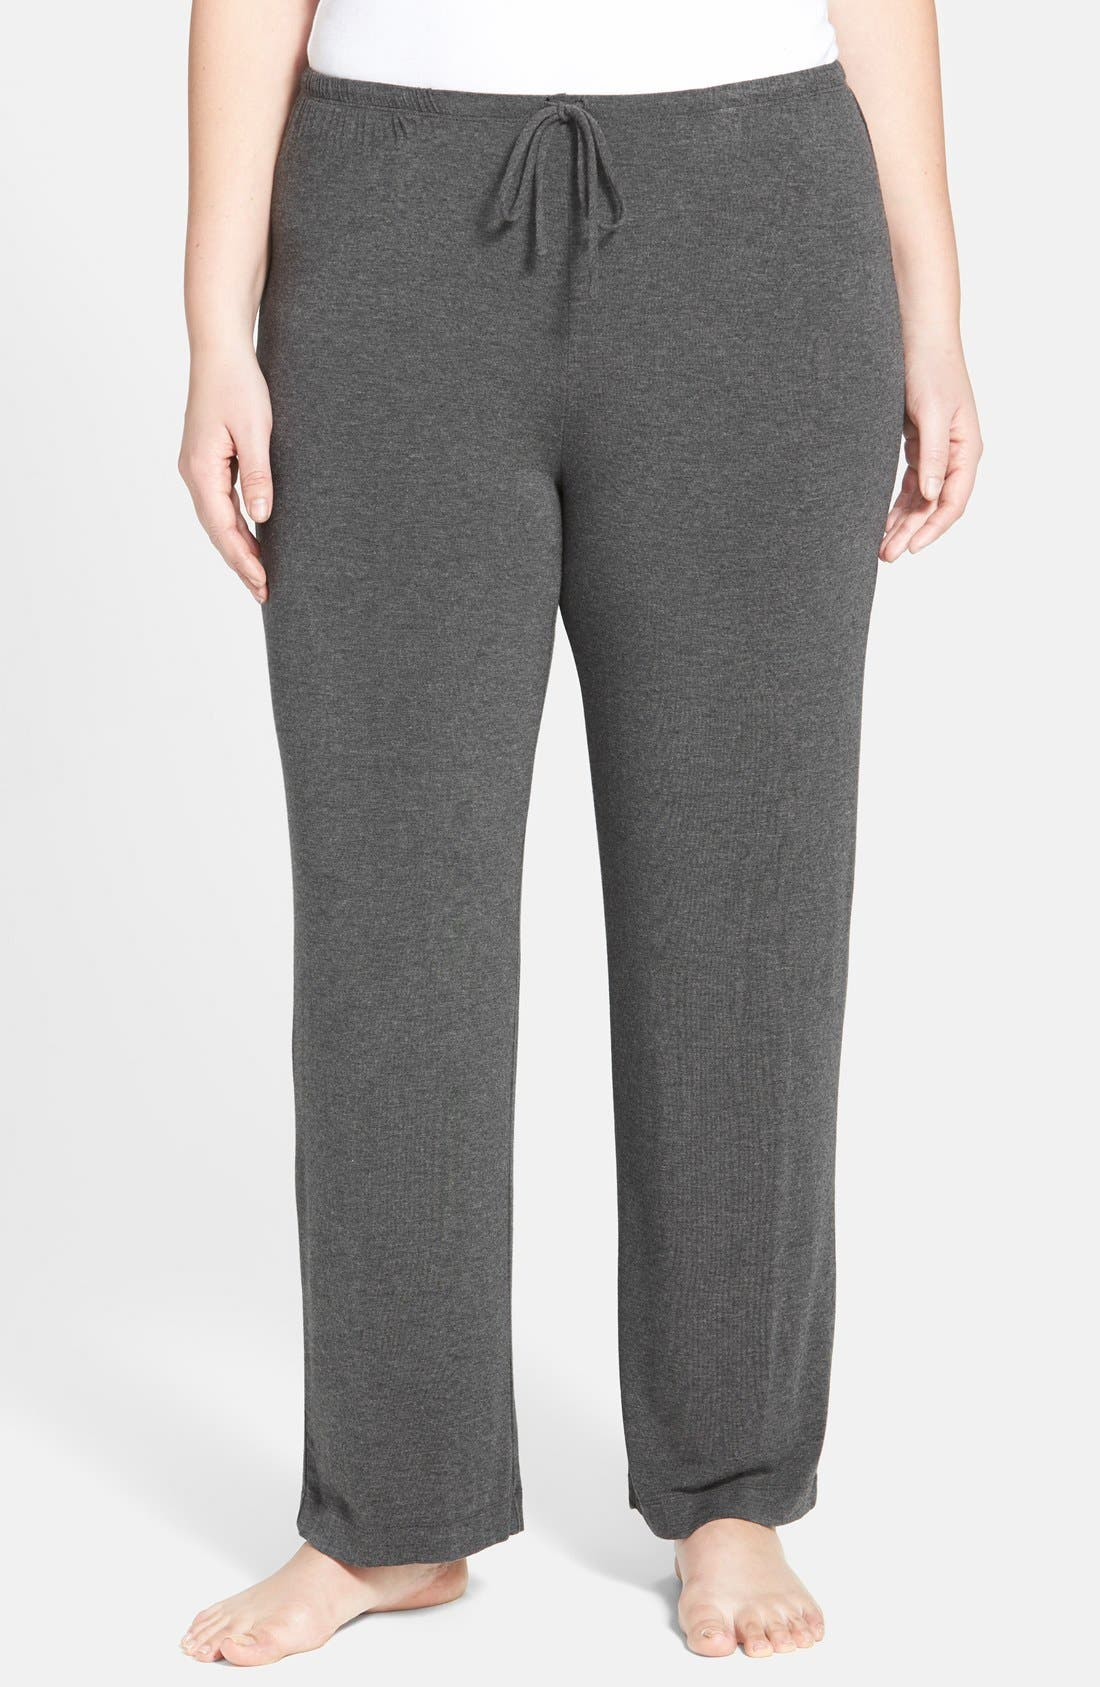 Main Image - DKNY 'Urban Essentials' Pants (Plus Size)